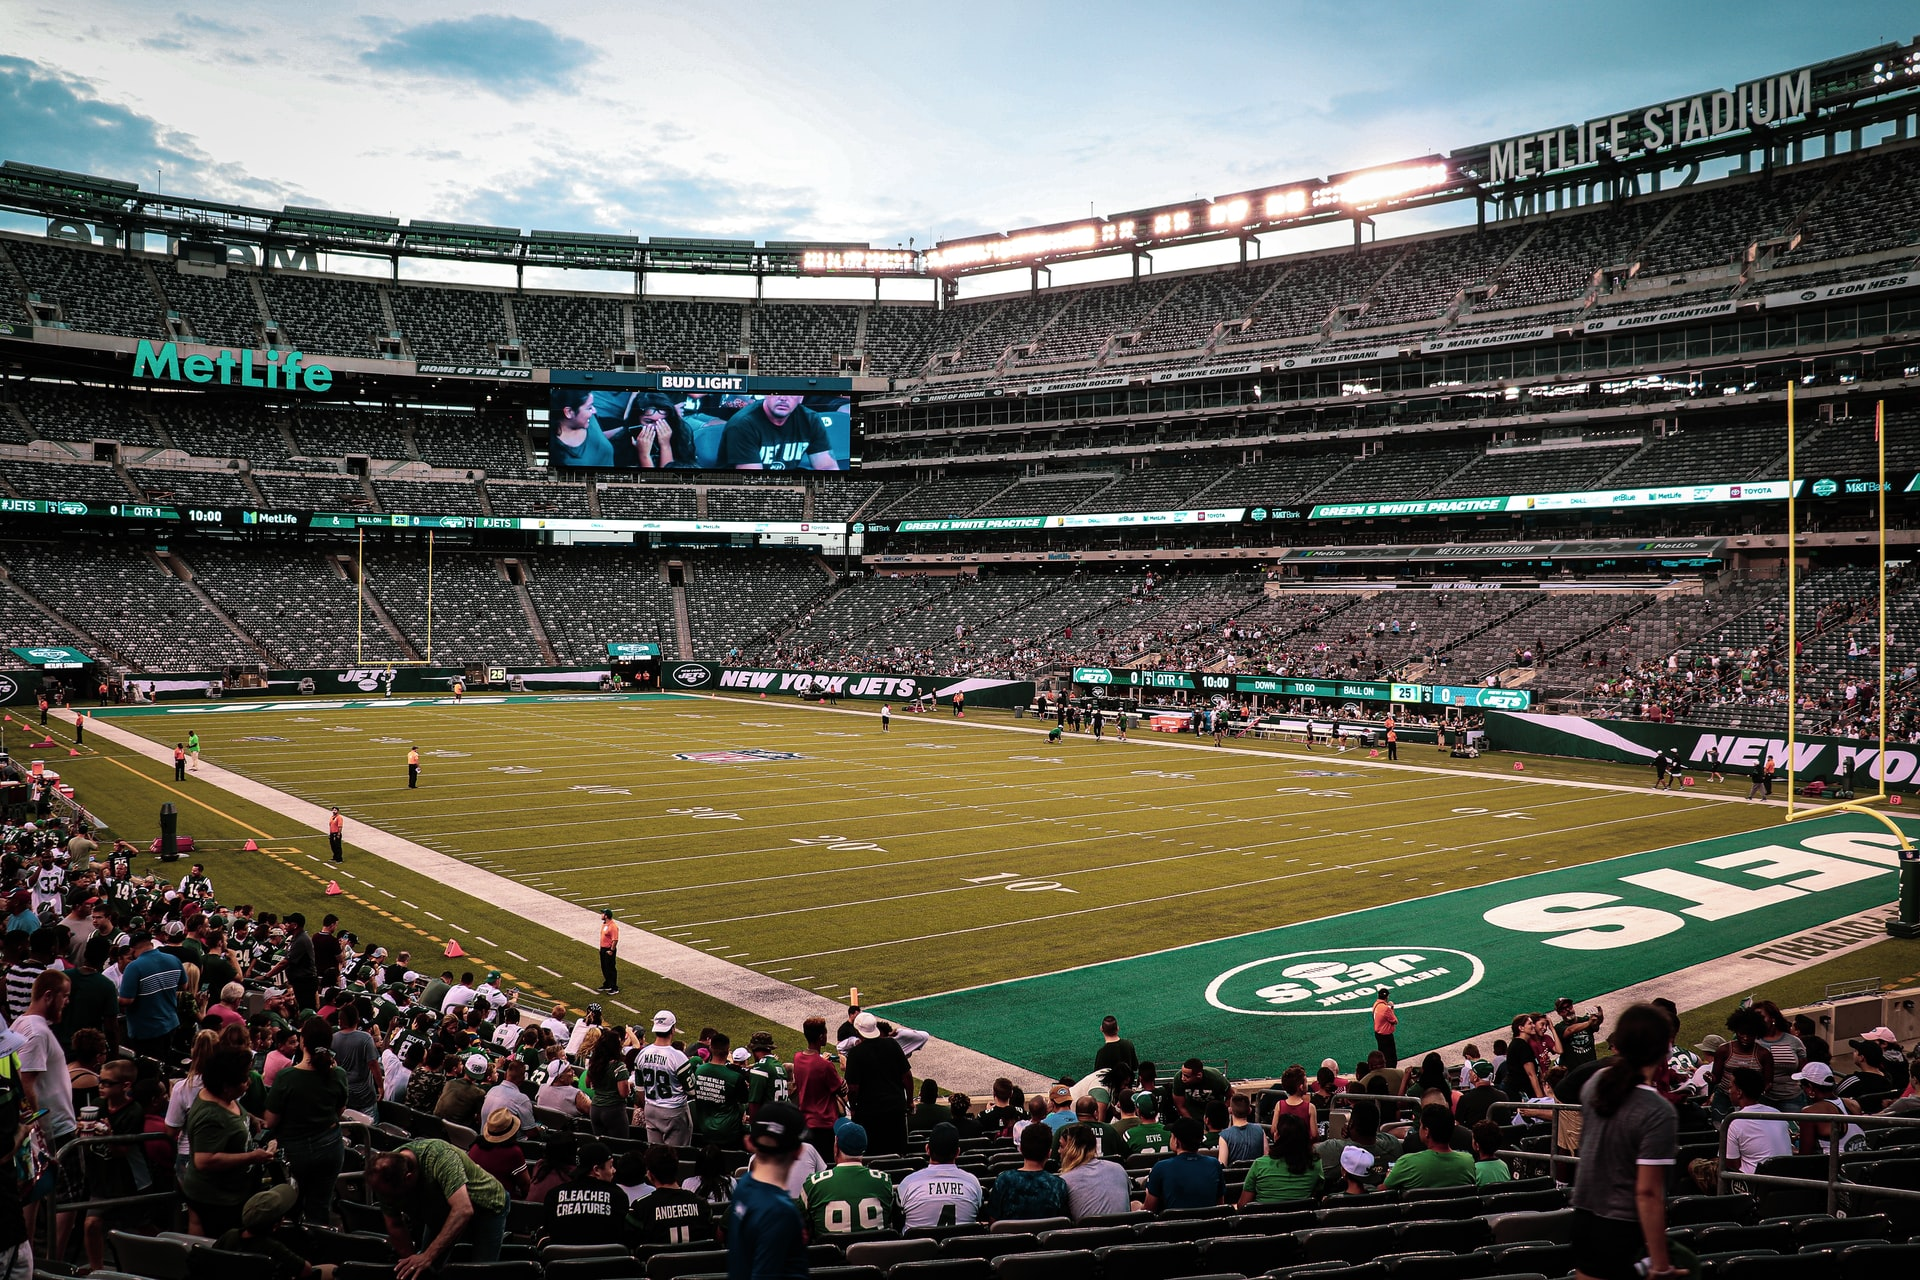 Sportsbook Operators Make Major Acquisitions, States Ease Restrictions on Betting Ahead of Football Season